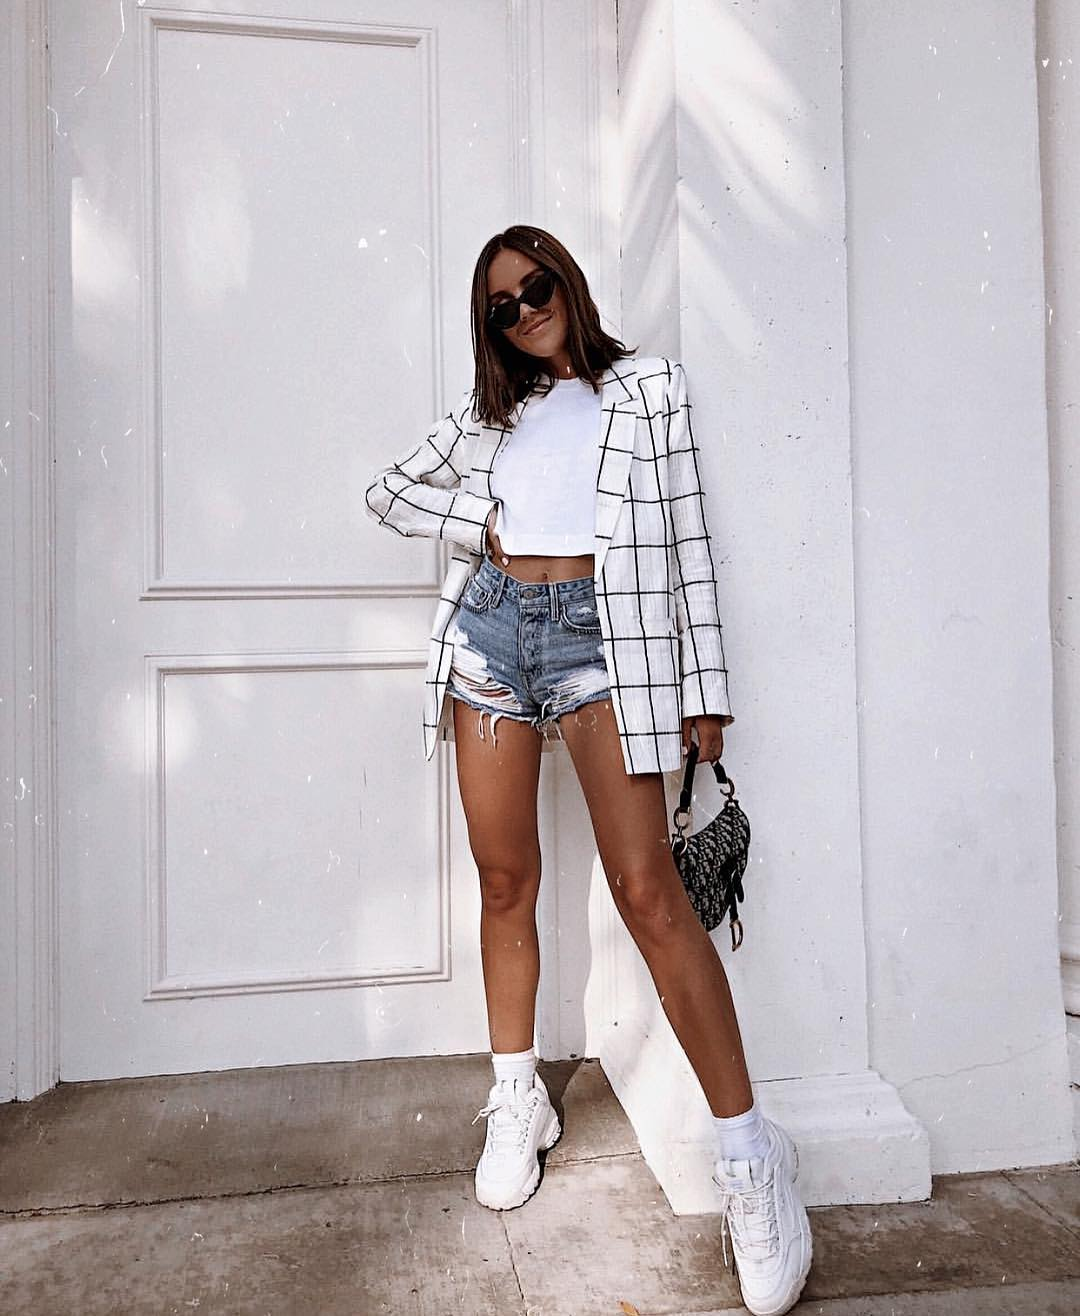 Windowpane White Blazer With White Crop Top, Ripped Denim Shorts And Chunky Kicks In White 2020